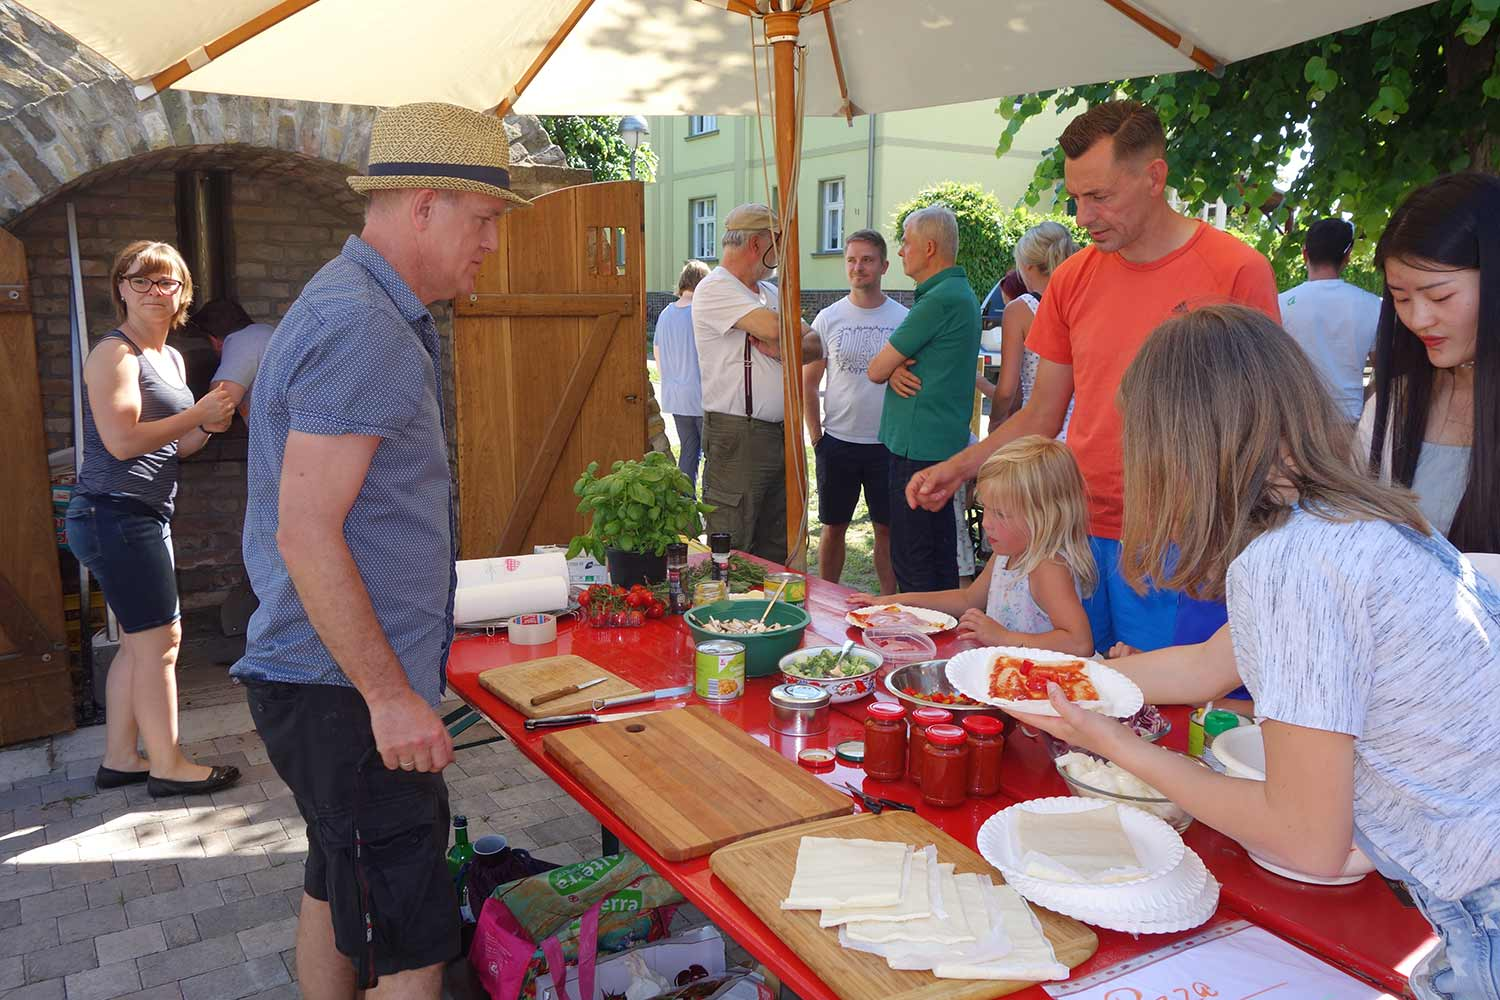 Groß Kreutz (Havel), Deetz, Pizzabacken, Backofen, Kindertag